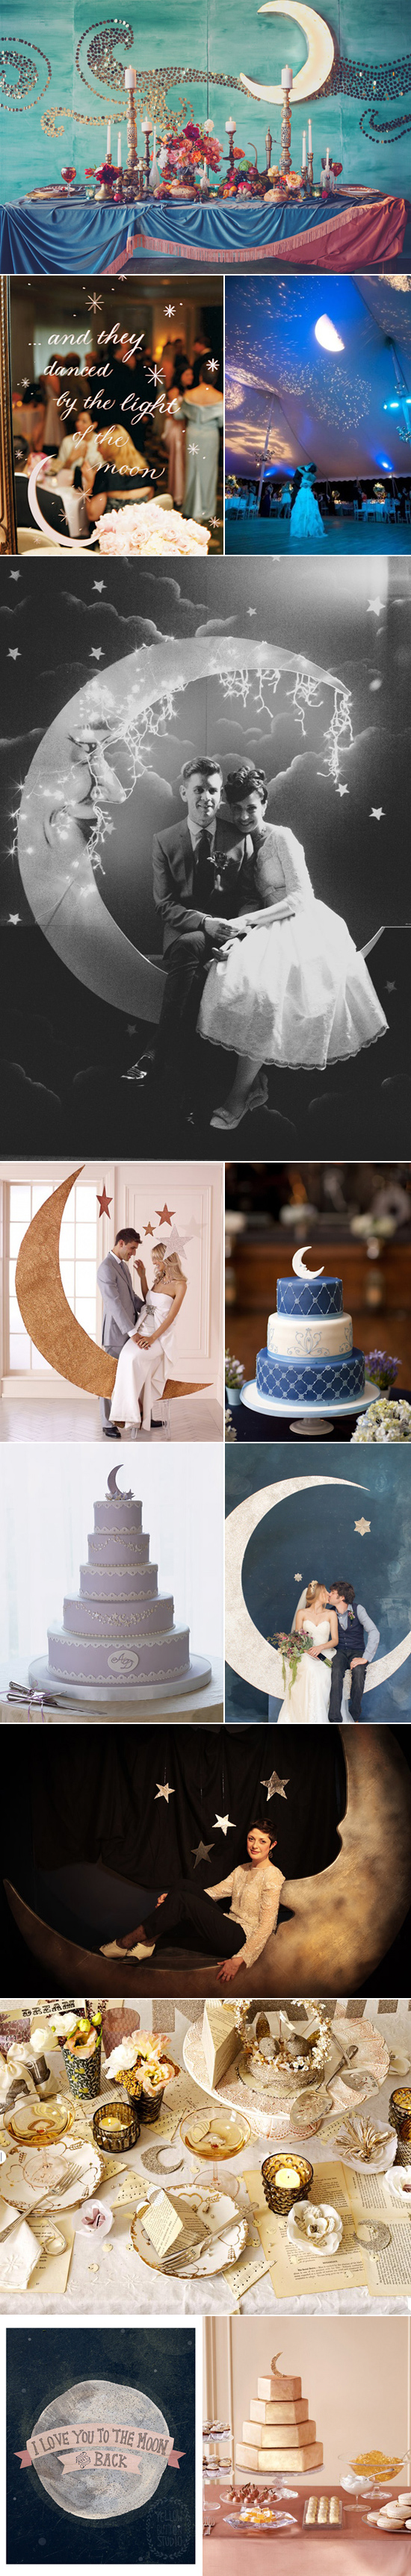 moon wedding inspiration